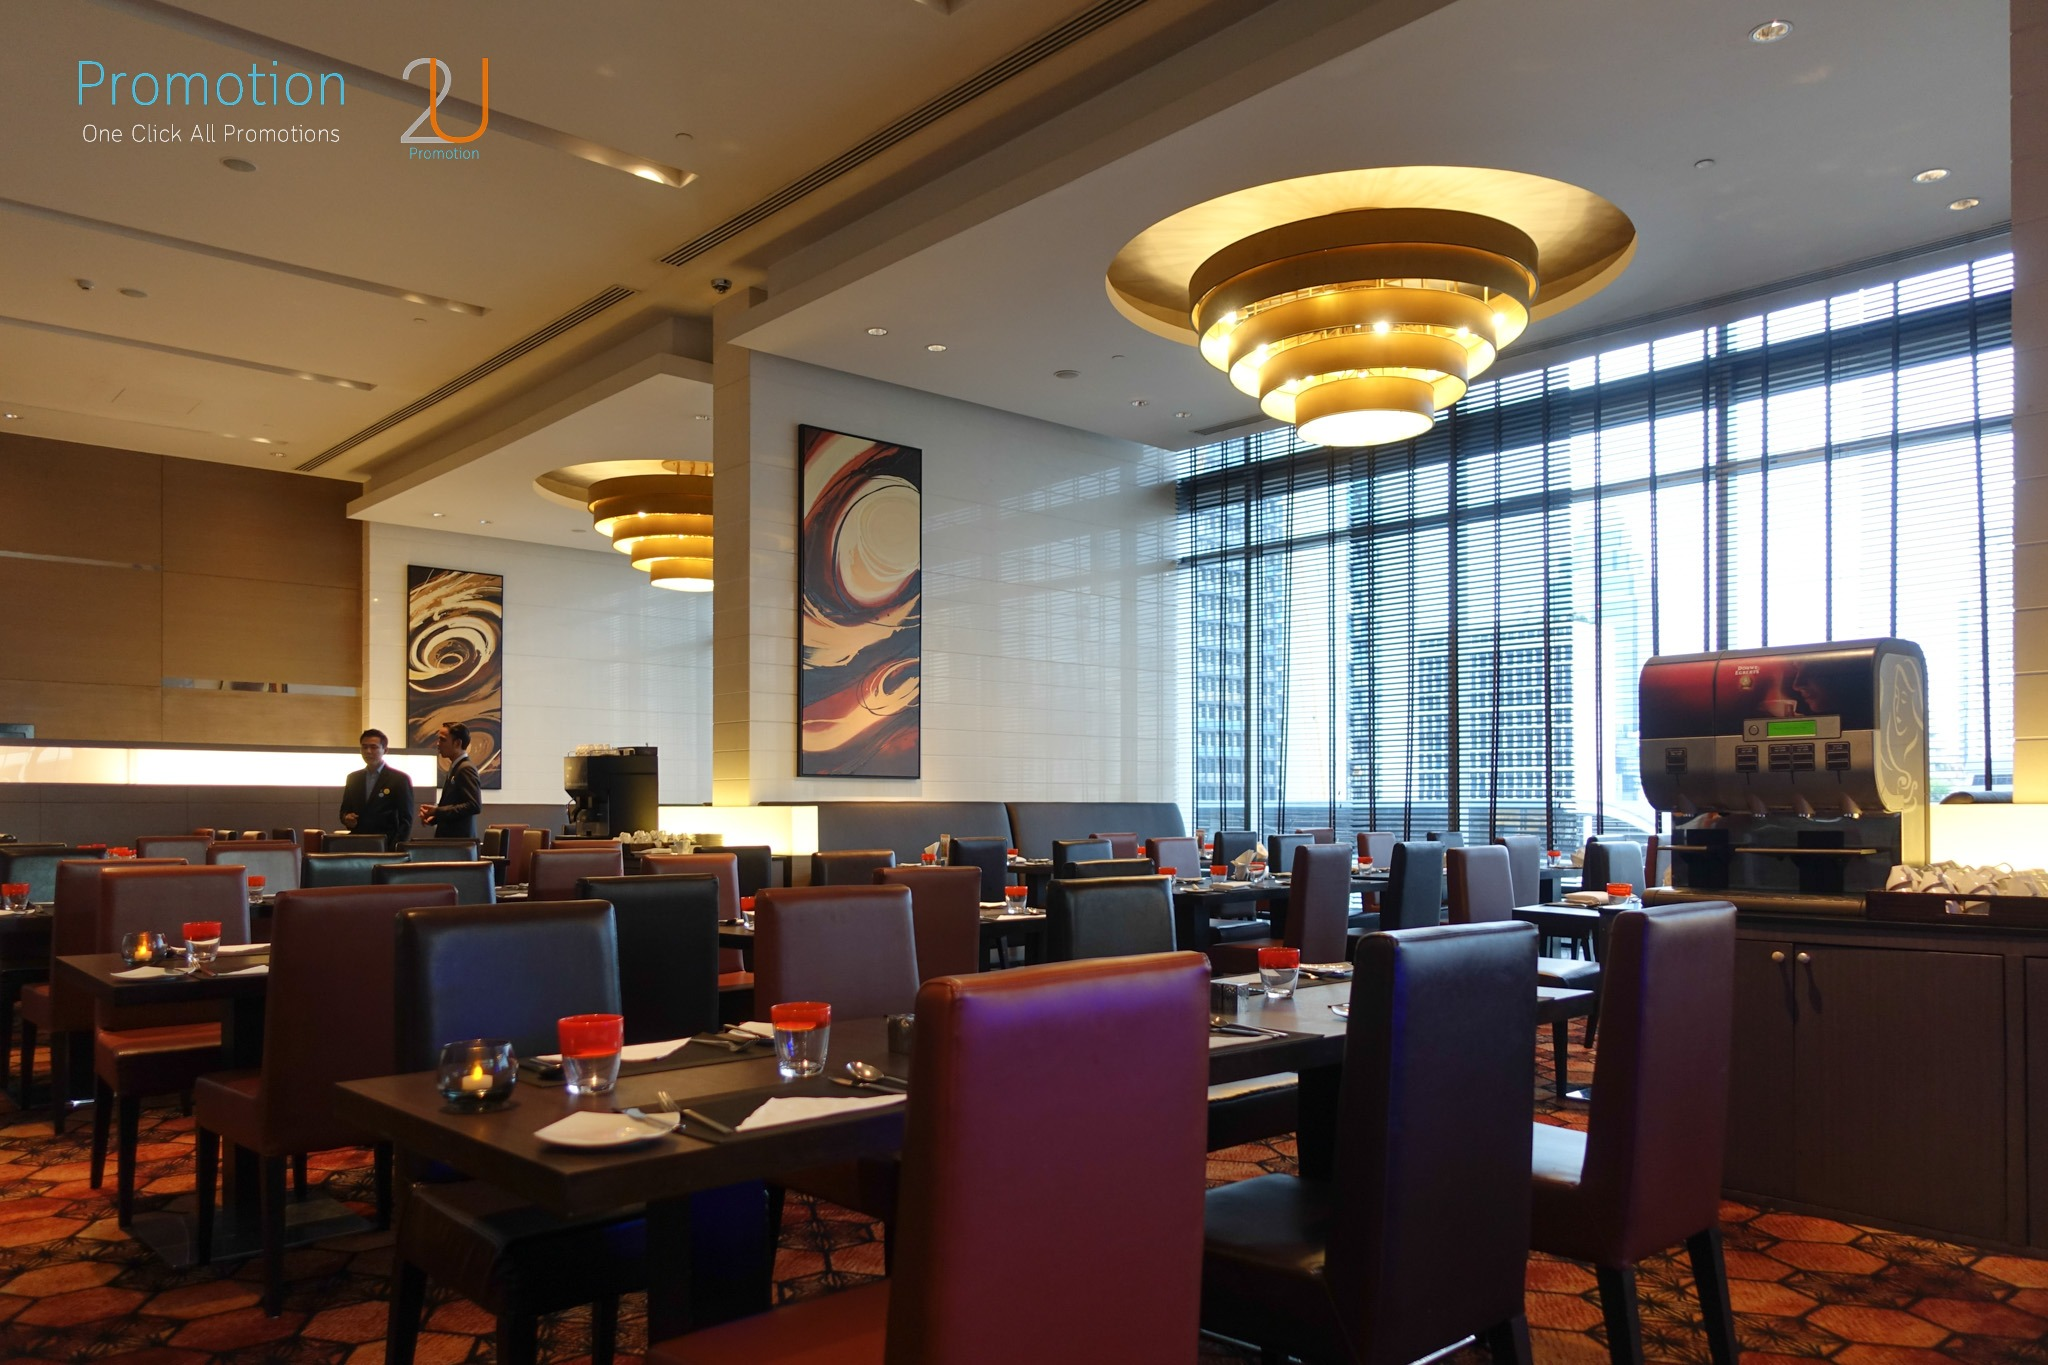 22Promotiion-Buffet-Come-2-pay-1-at-The--Squaer-Novotel-Pleonjit-Bangkok